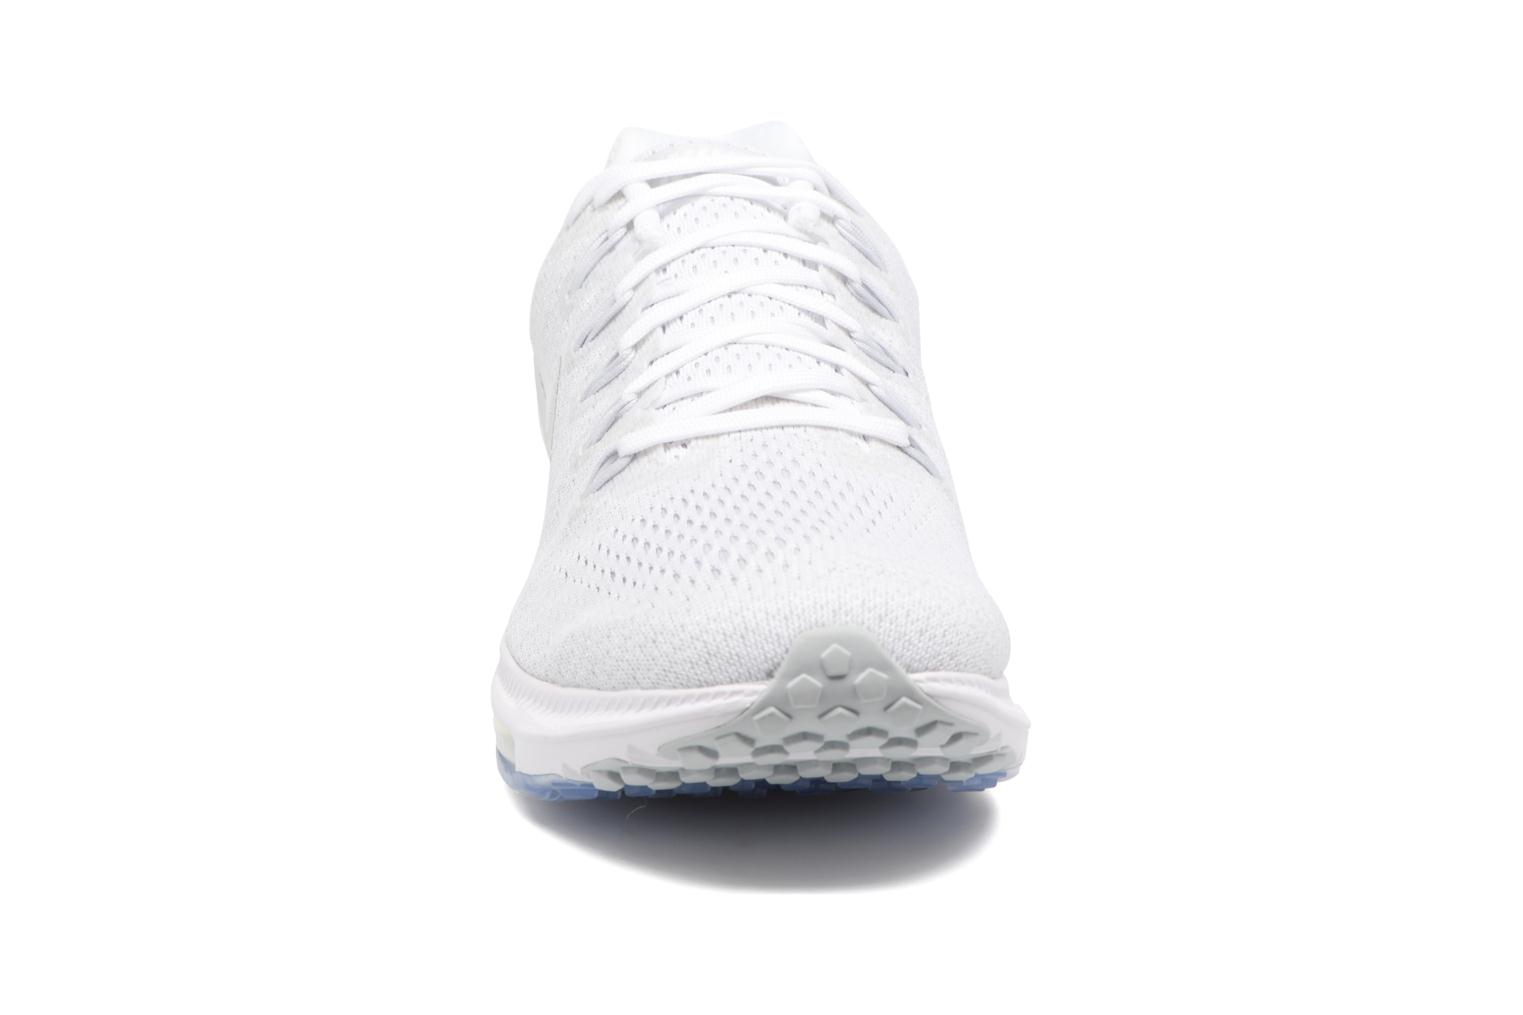 Chaussures de sport Nike Nike Zoom All Out Low Blanc vue portées chaussures